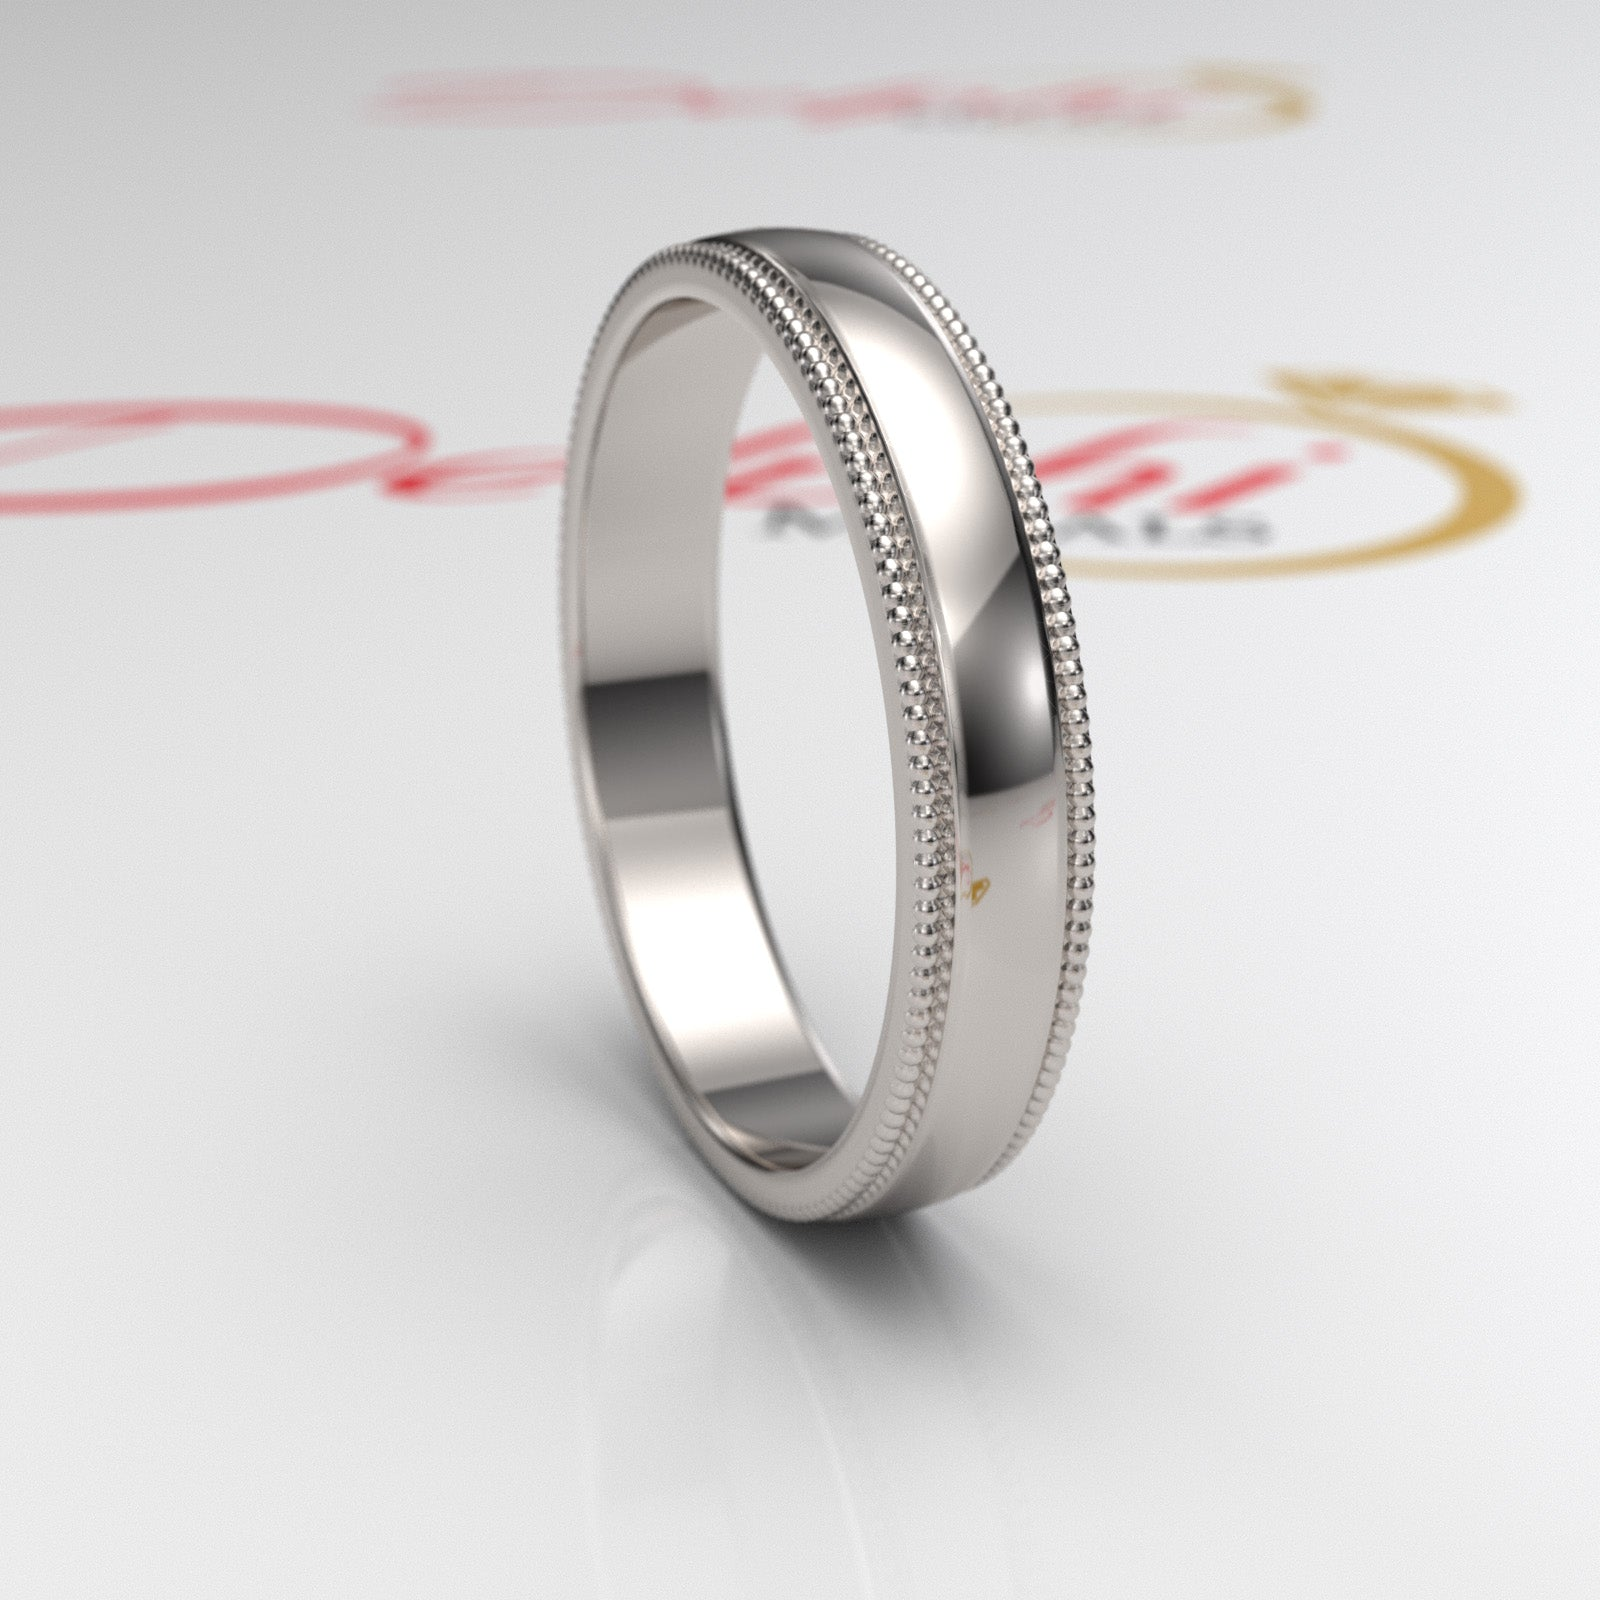 Gold Wedding Band - 06GG51